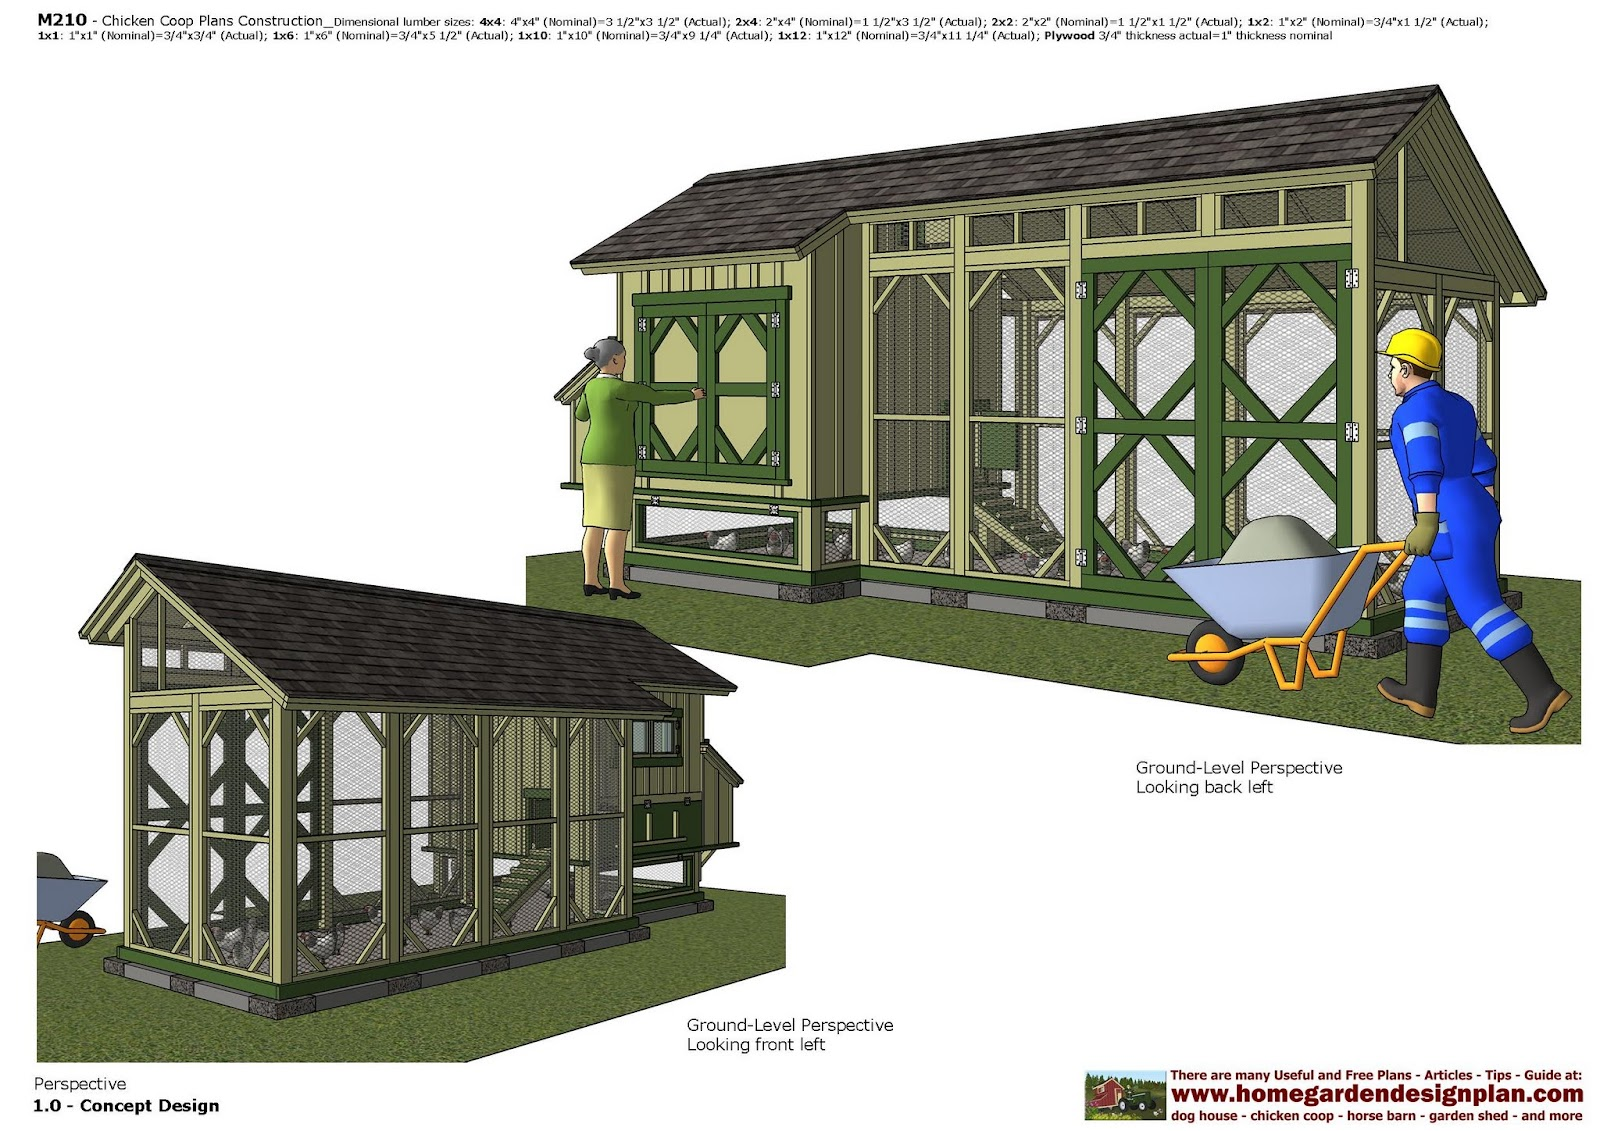 Home garden plans m210 chicken coop plans construction Home run architecture